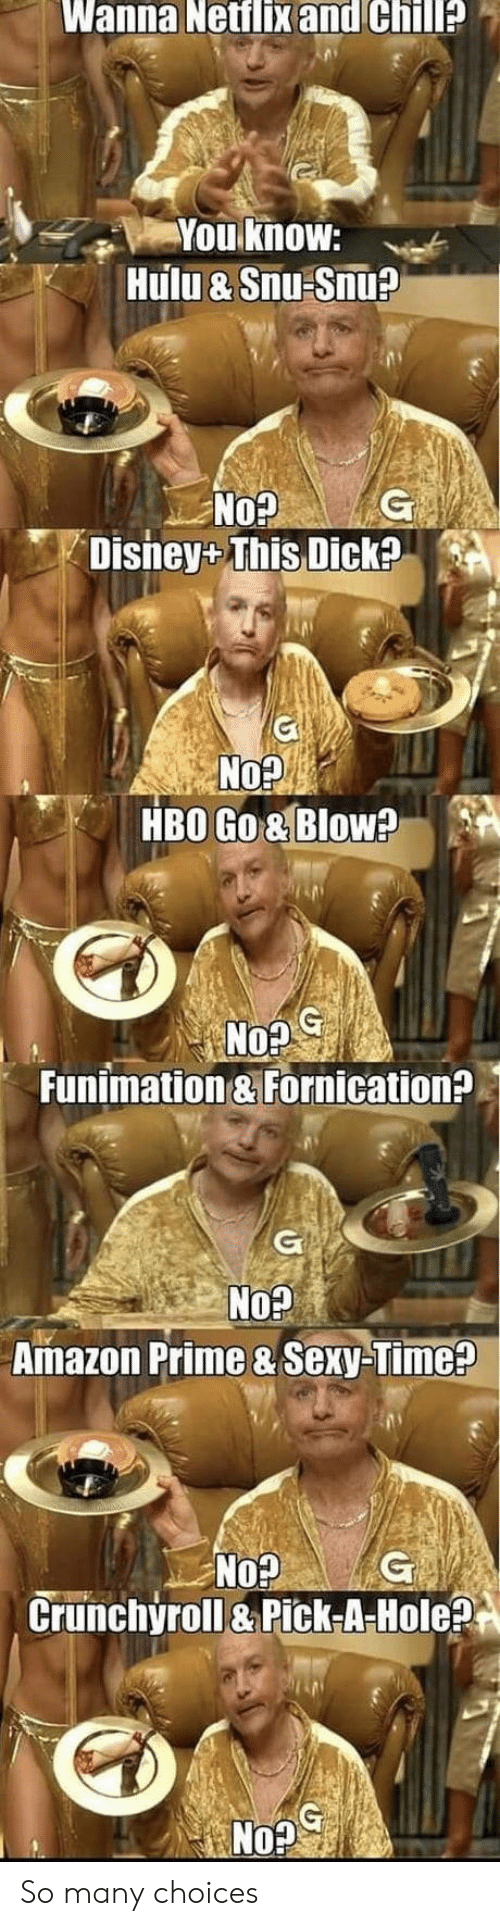 HBO: Wanna Netflix and Chill?  You know:  Hulu & Snu Snu?  G  No?  Disney+ This Dick?  No?  HBO Go& Blow?  G  No?  Funimation & Fornication?  G  No?  Amazon Prime & Sexy-Time?  No?  Crunchyroll&Pick-A-Hole?  G So many choices